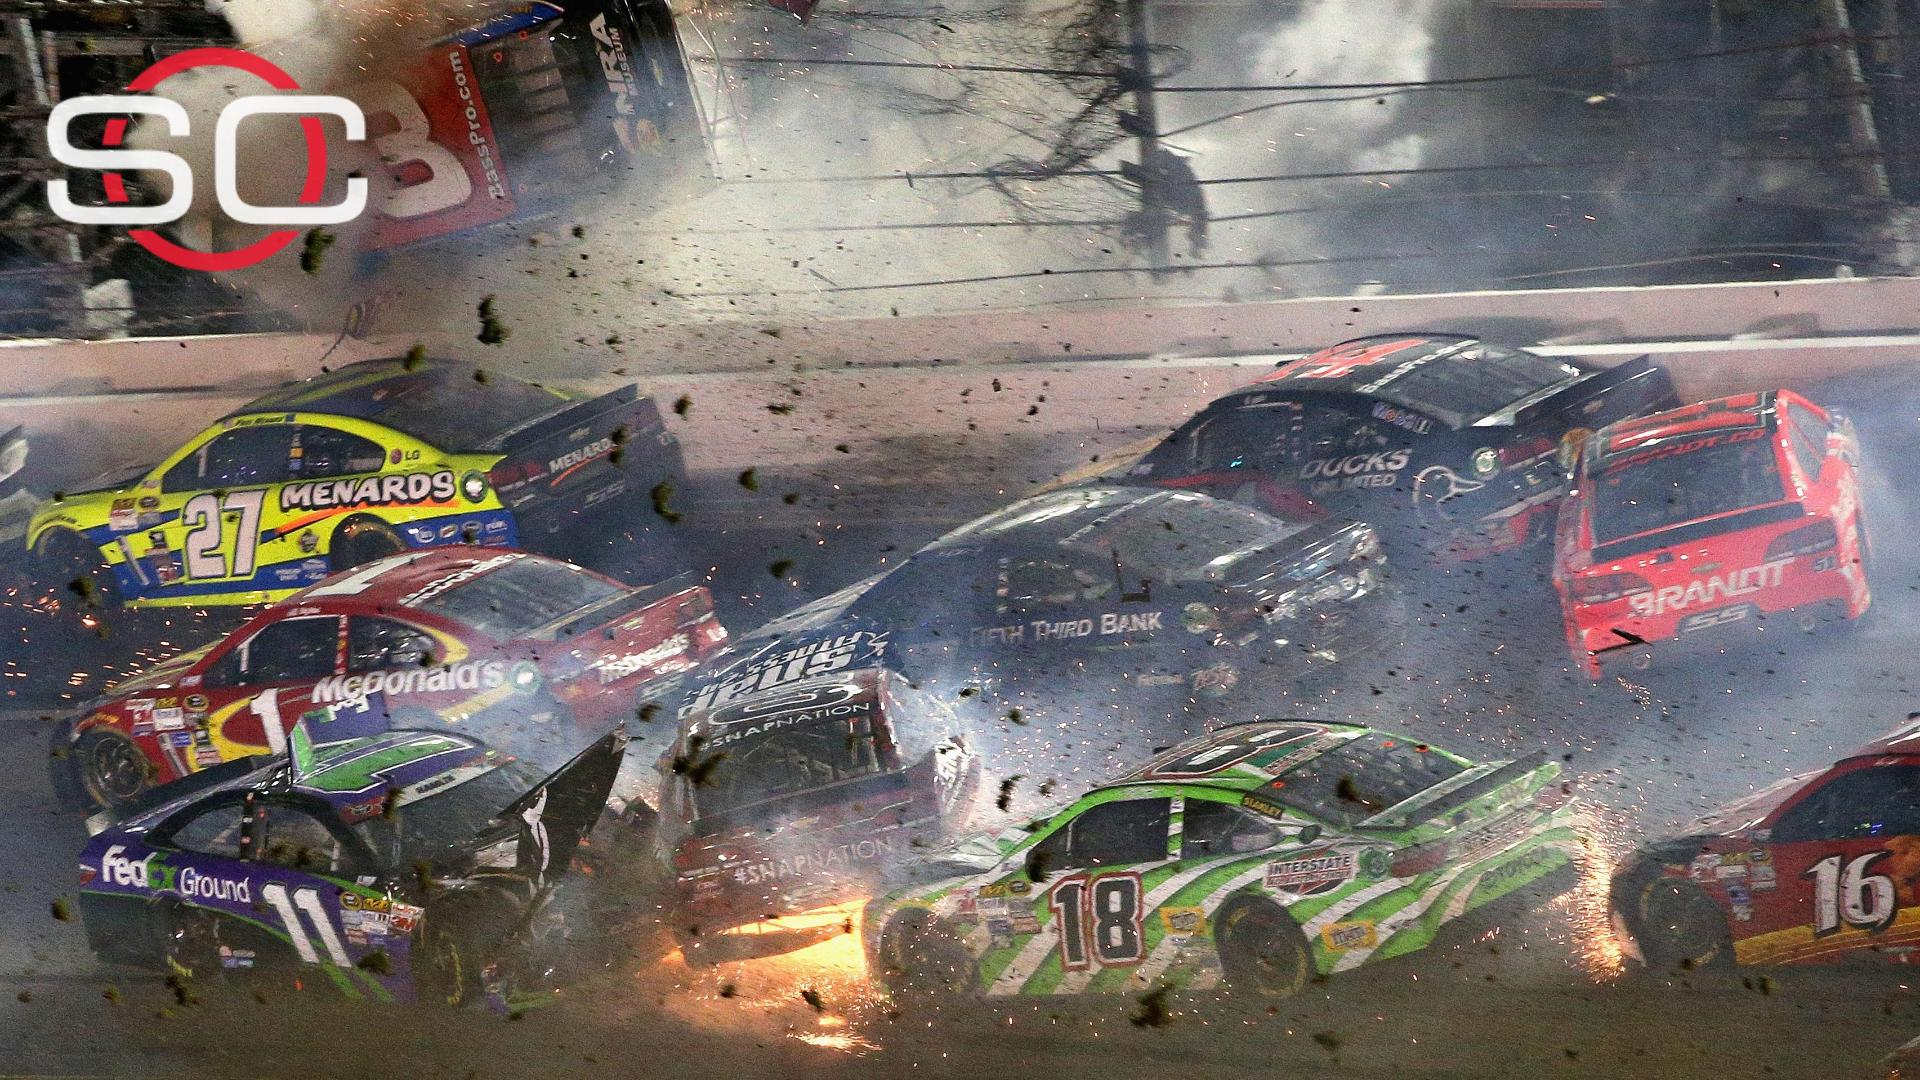 http://a.espncdn.com/media/motion/2015/0706/dm_150706_SC_Ricky_Craven_Daytona_analysis830/dm_150706_SC_Ricky_Craven_Daytona_analysis830.jpg